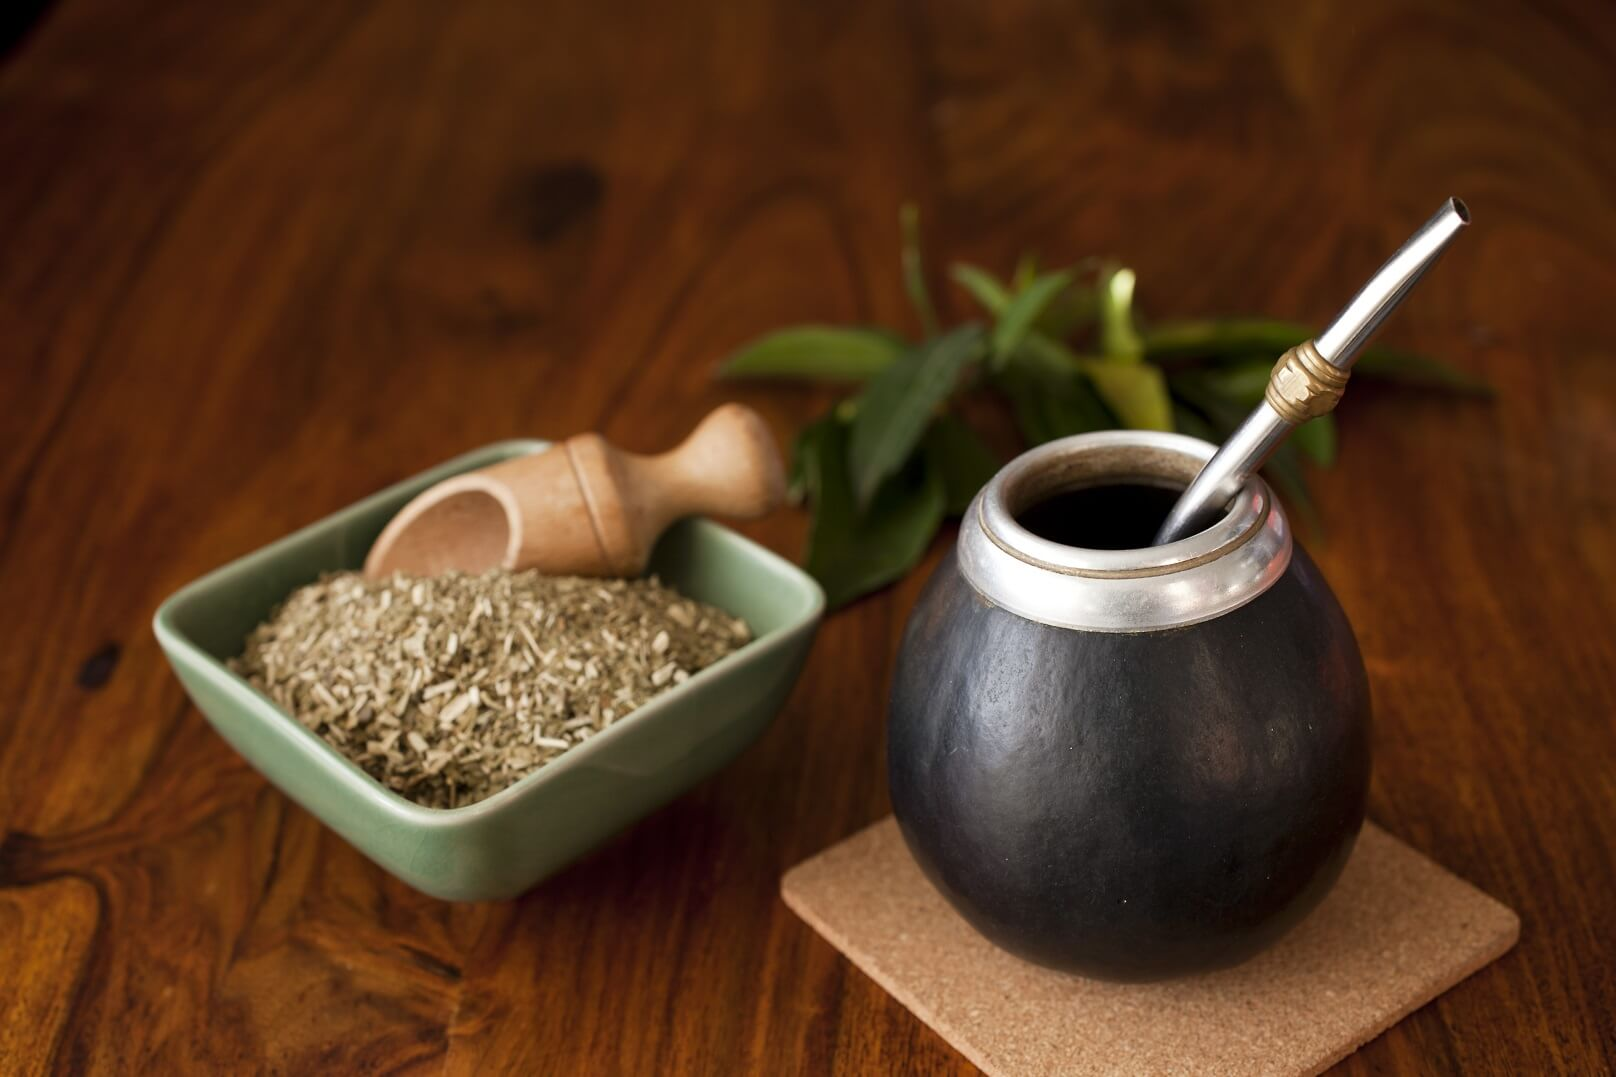 Mate contains all essential vitamins